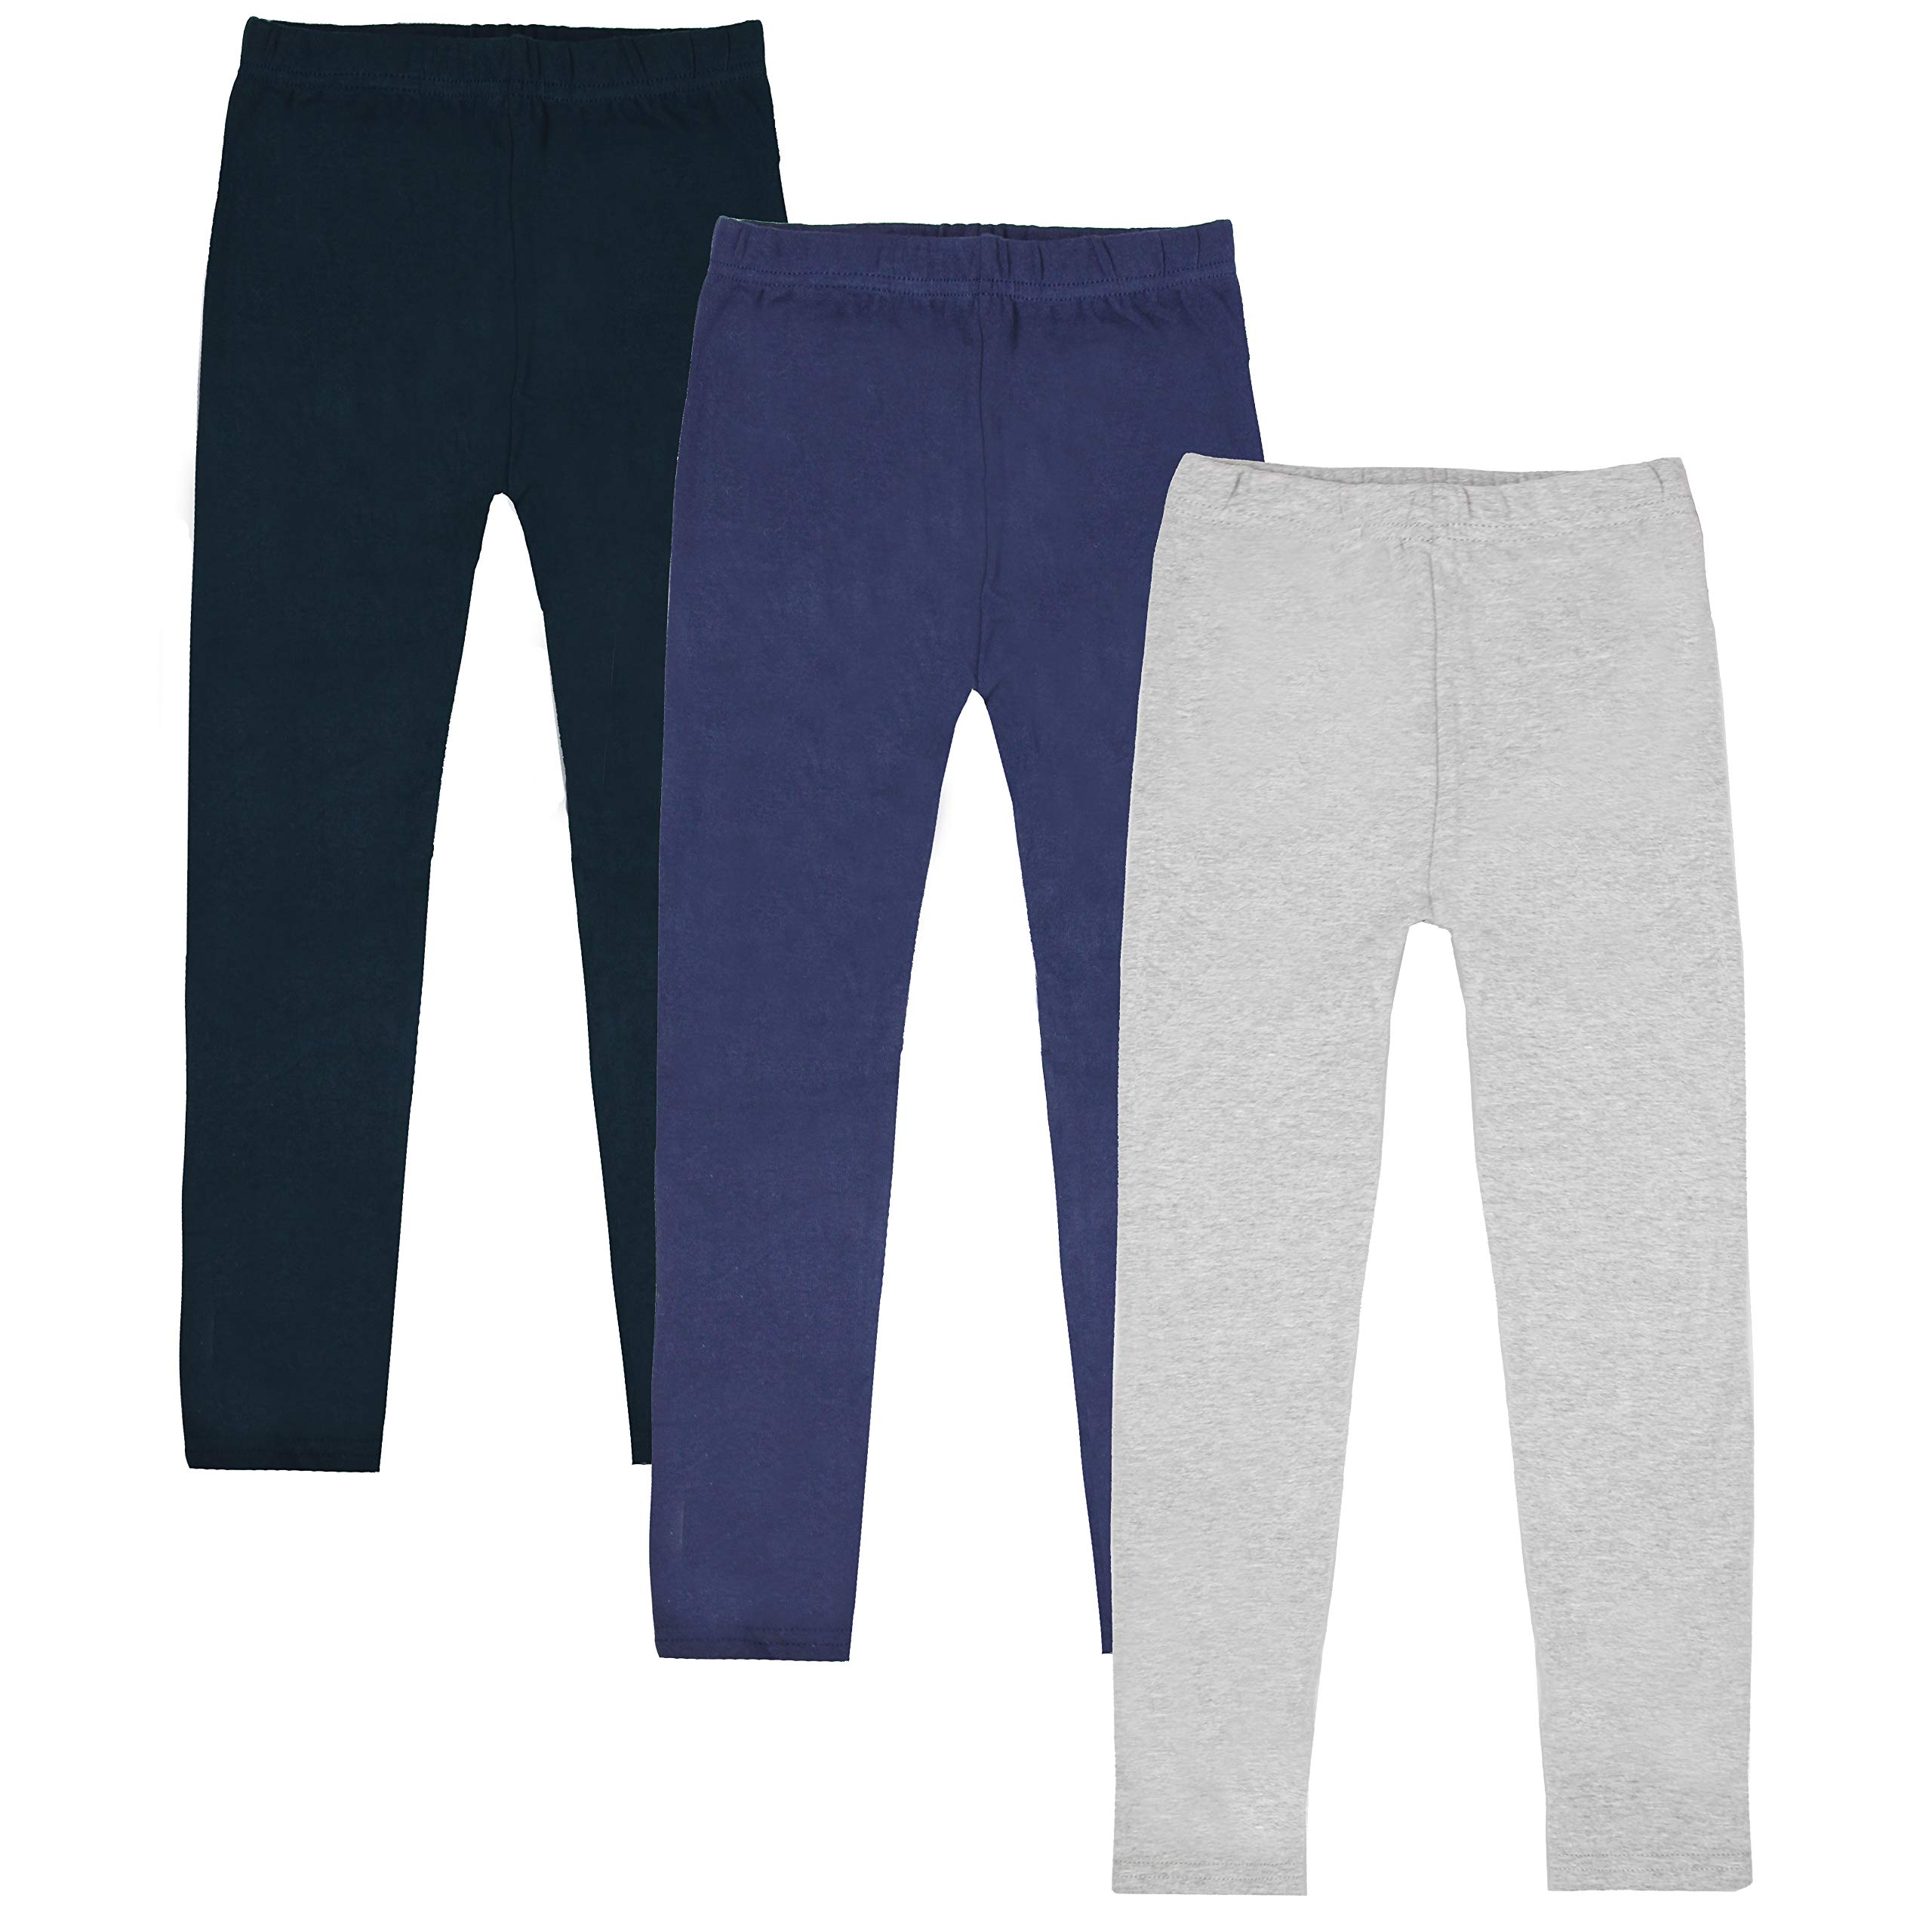 FreeNFond Girls Leggings 3 Pack Cotton Solid Spring Fall Winter Pants